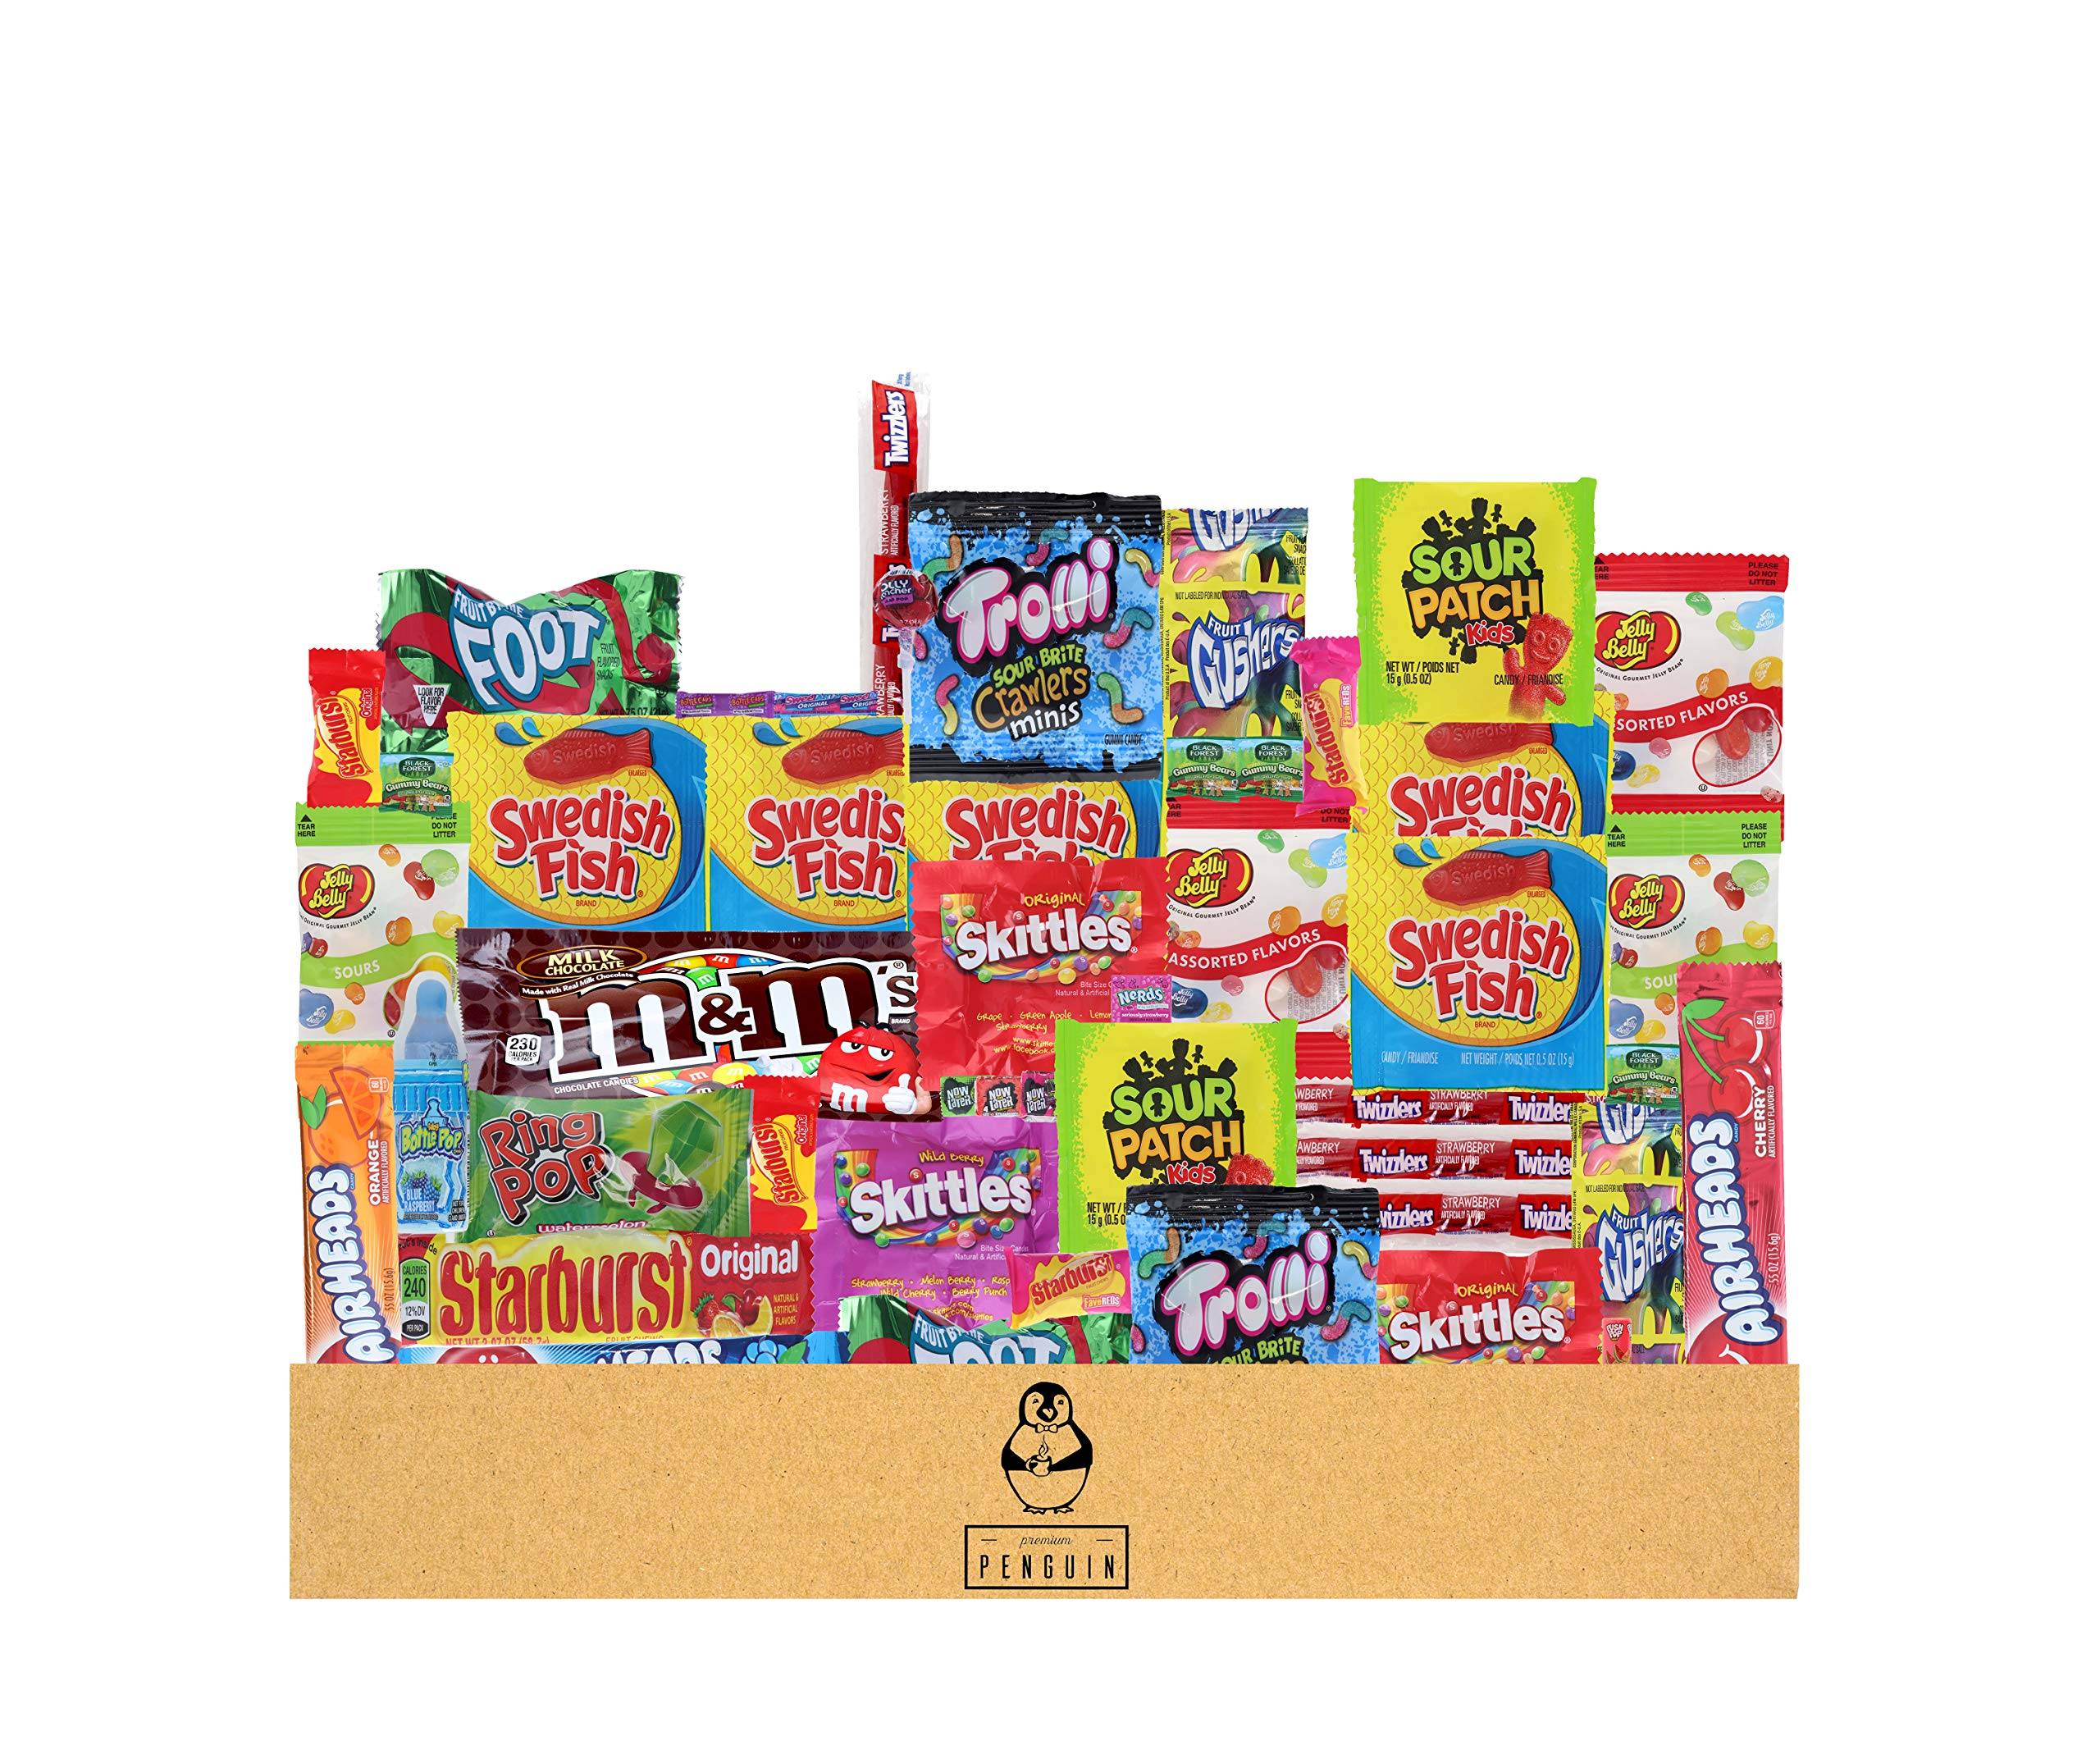 Bulk Assorted Candy Care Package - (50 count) A Sampler of Skittles, Sour Patch Kids, Starburst, M&M's, Twizzlers, Sweet Tarts, and More! Great for Movie Night, Sleepovers, and Goodie Bags! by Premium Penguin